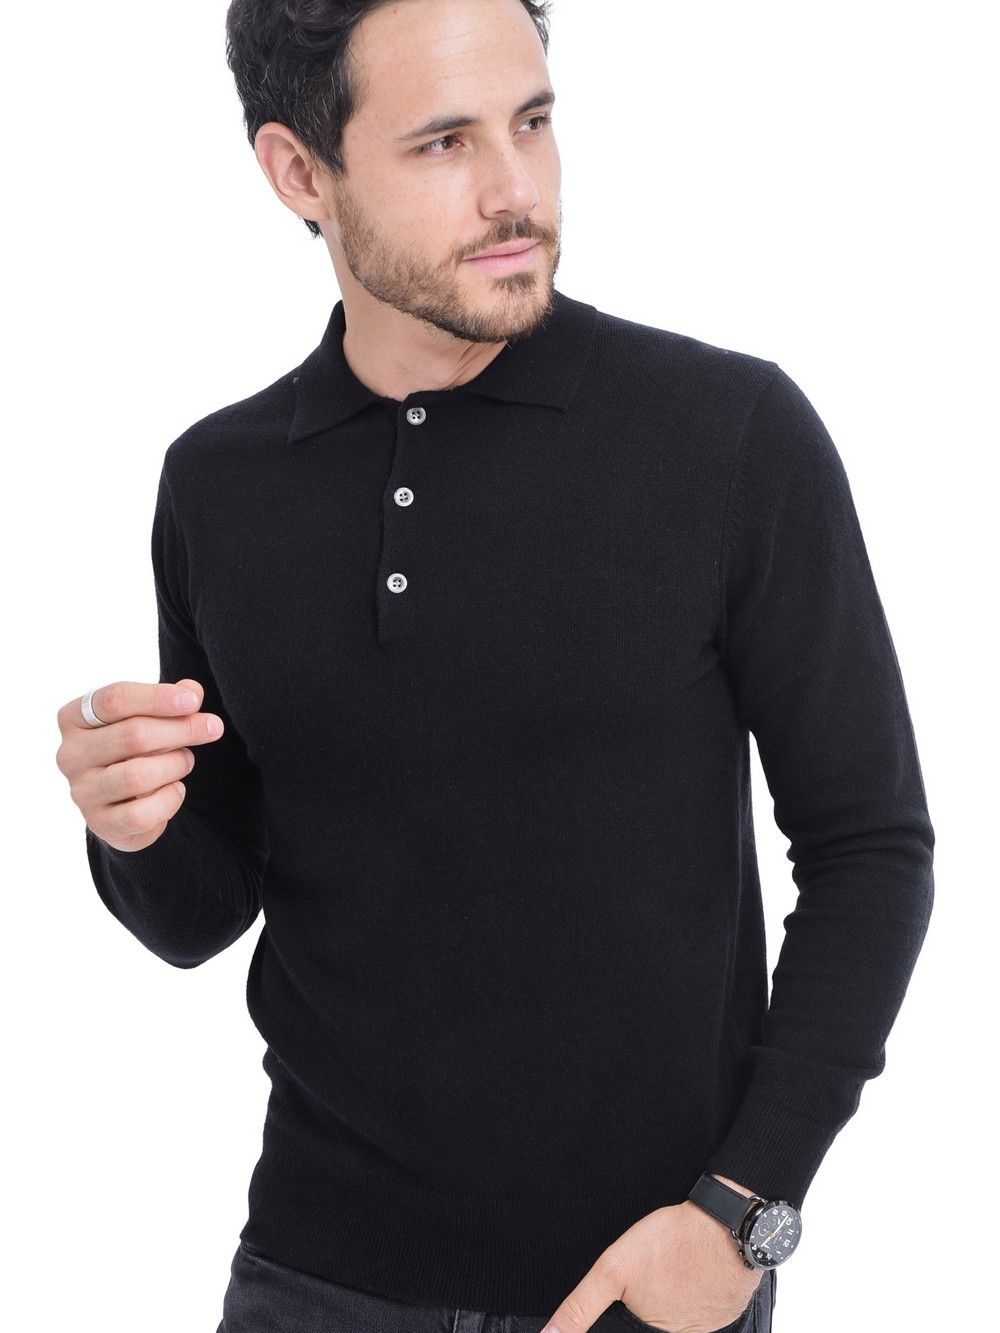 C&JO Polo Neck Button Up Sweater in Black